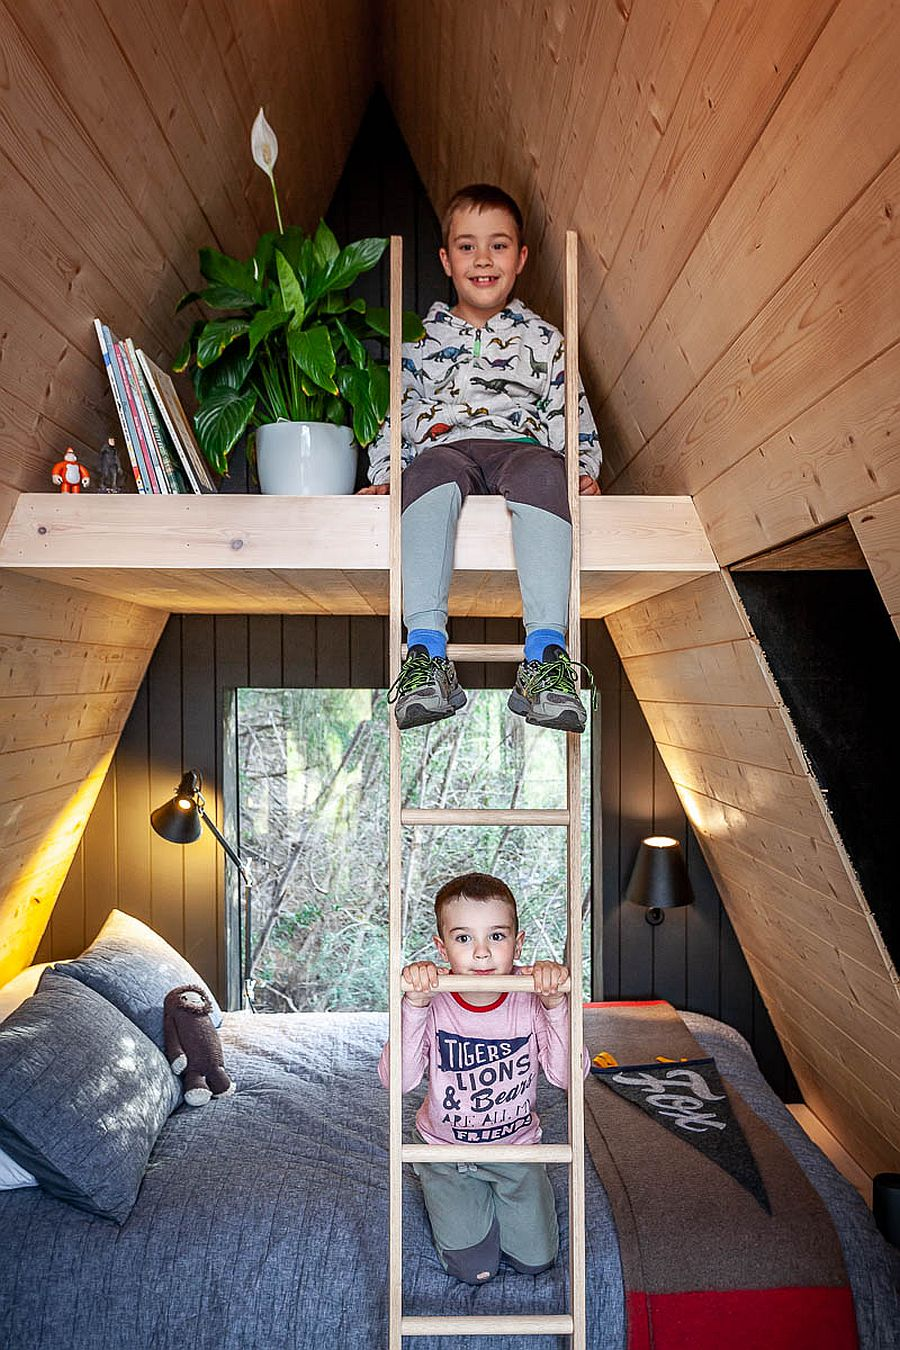 Bunk beds inside the A-frame treehouse for the two boys